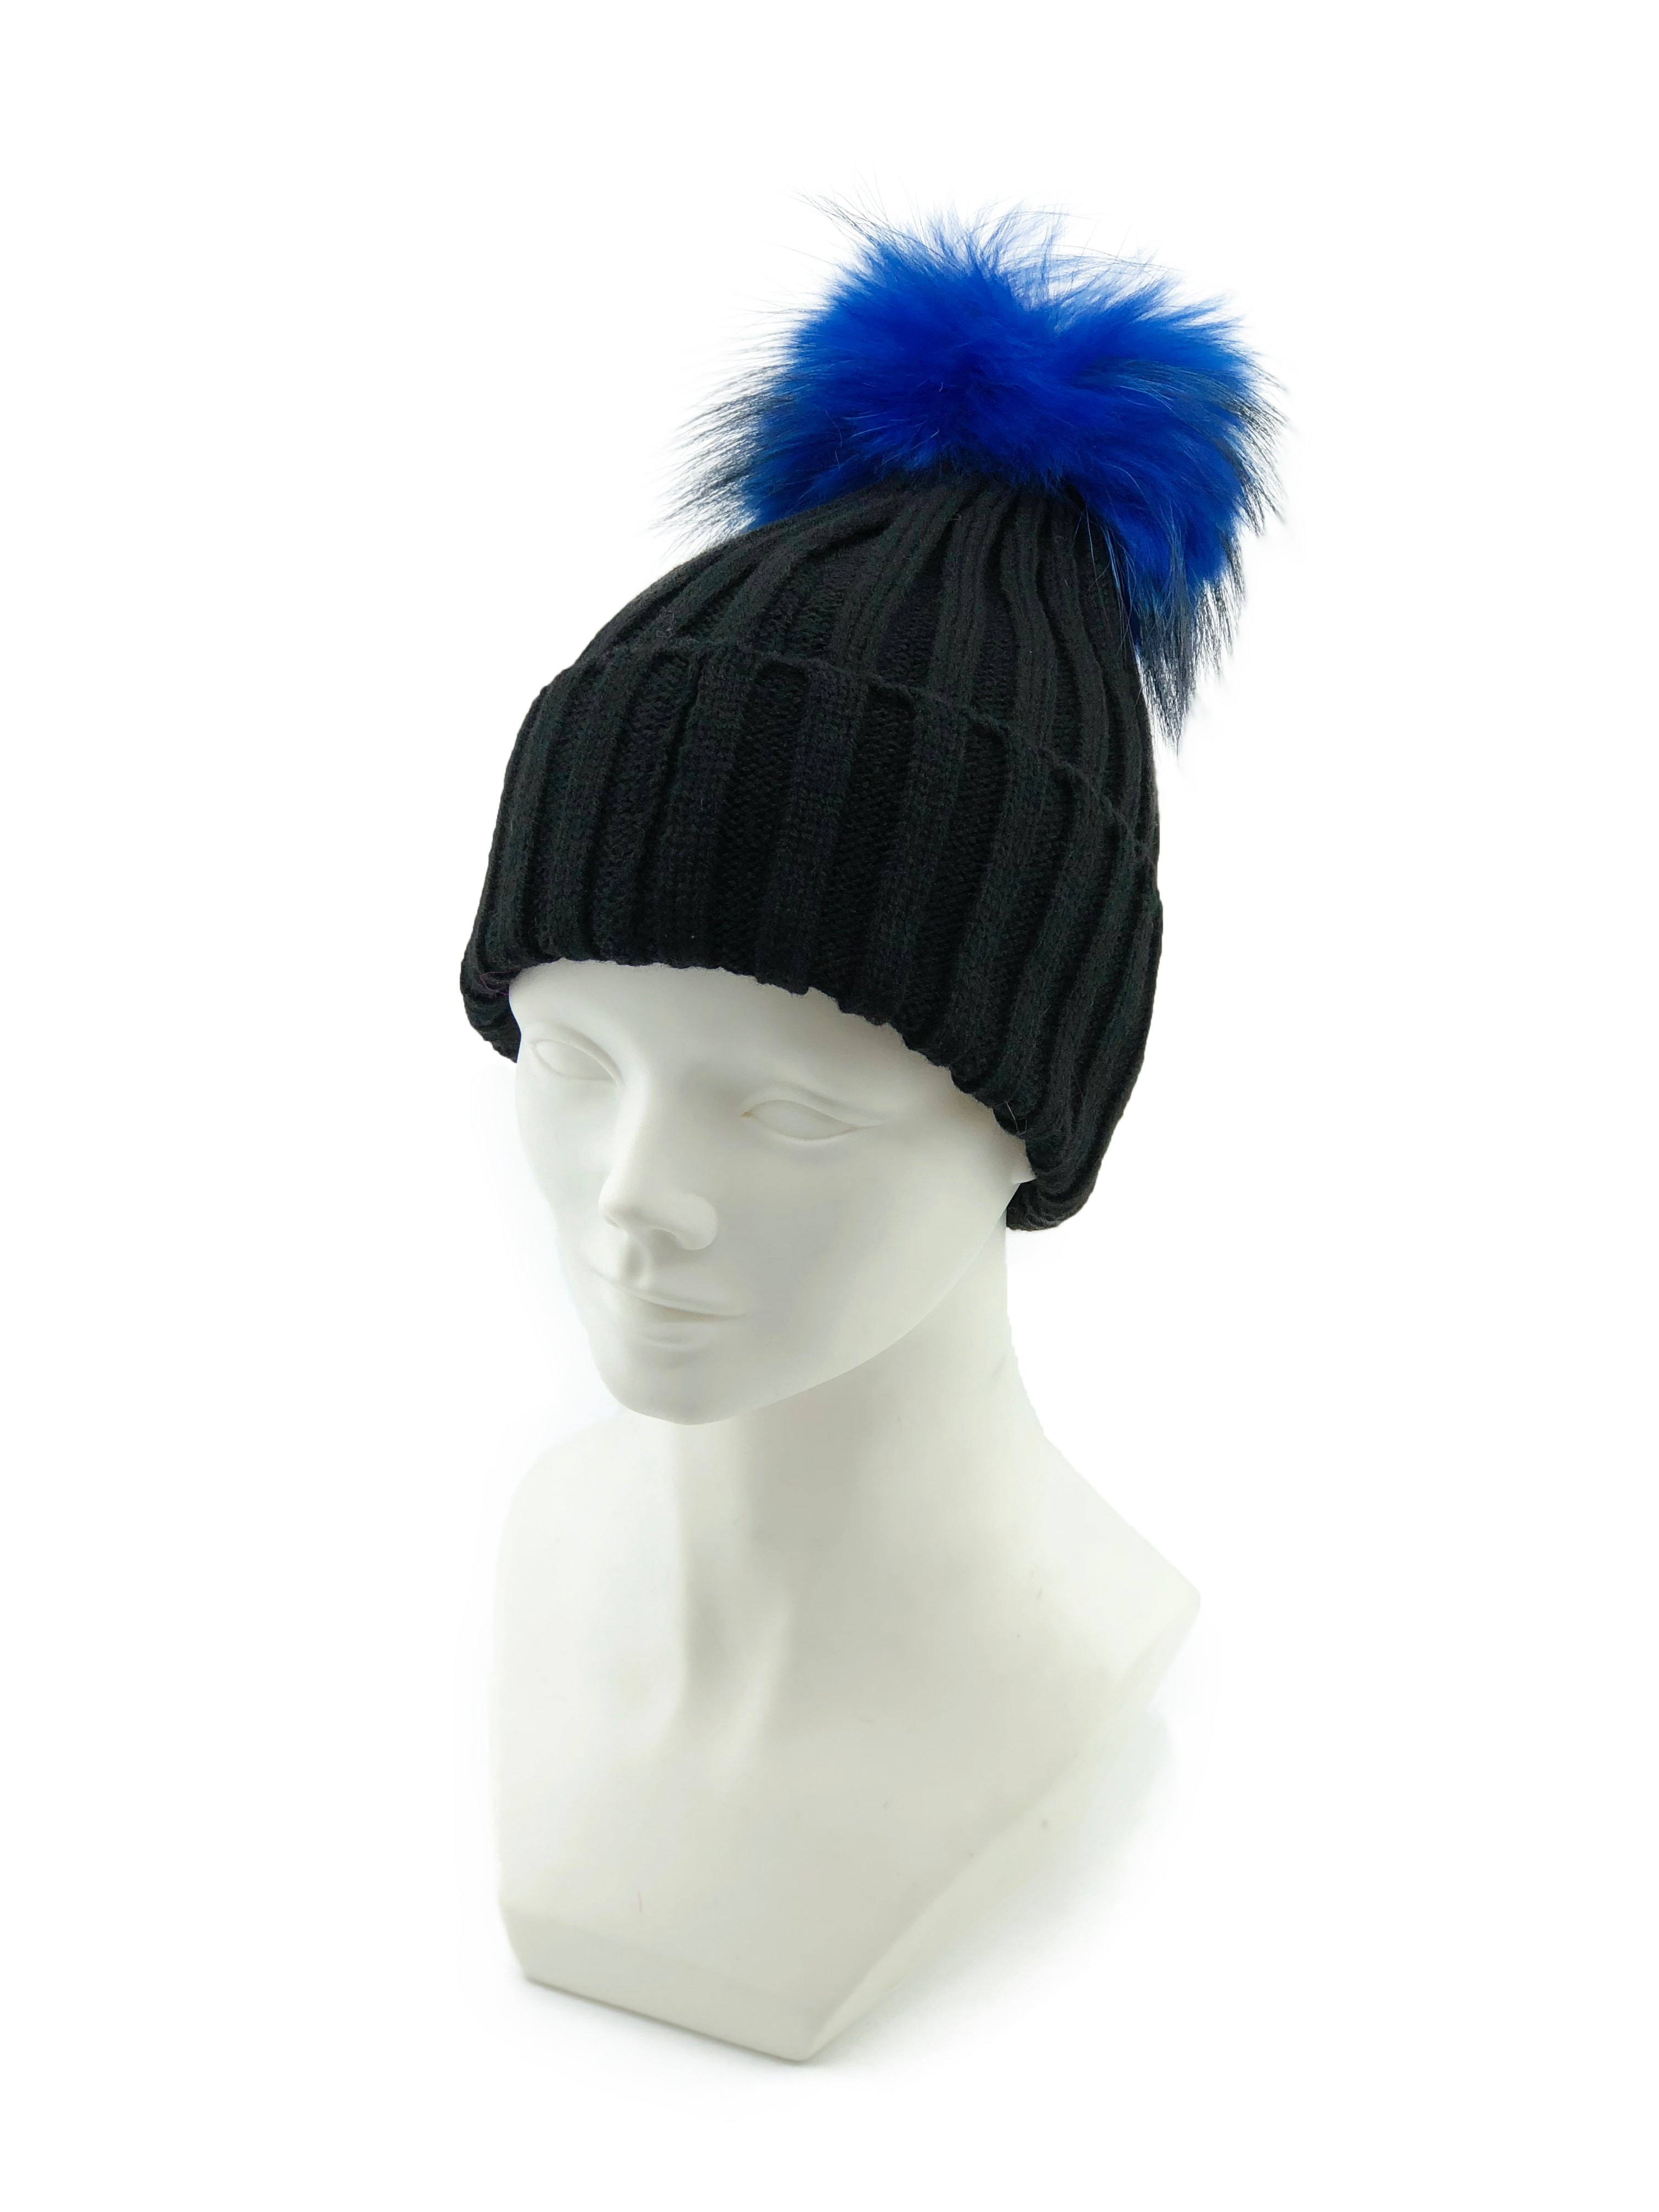 Knitted Beanie with Removable Dyed Fur Pom - paulamariecollection